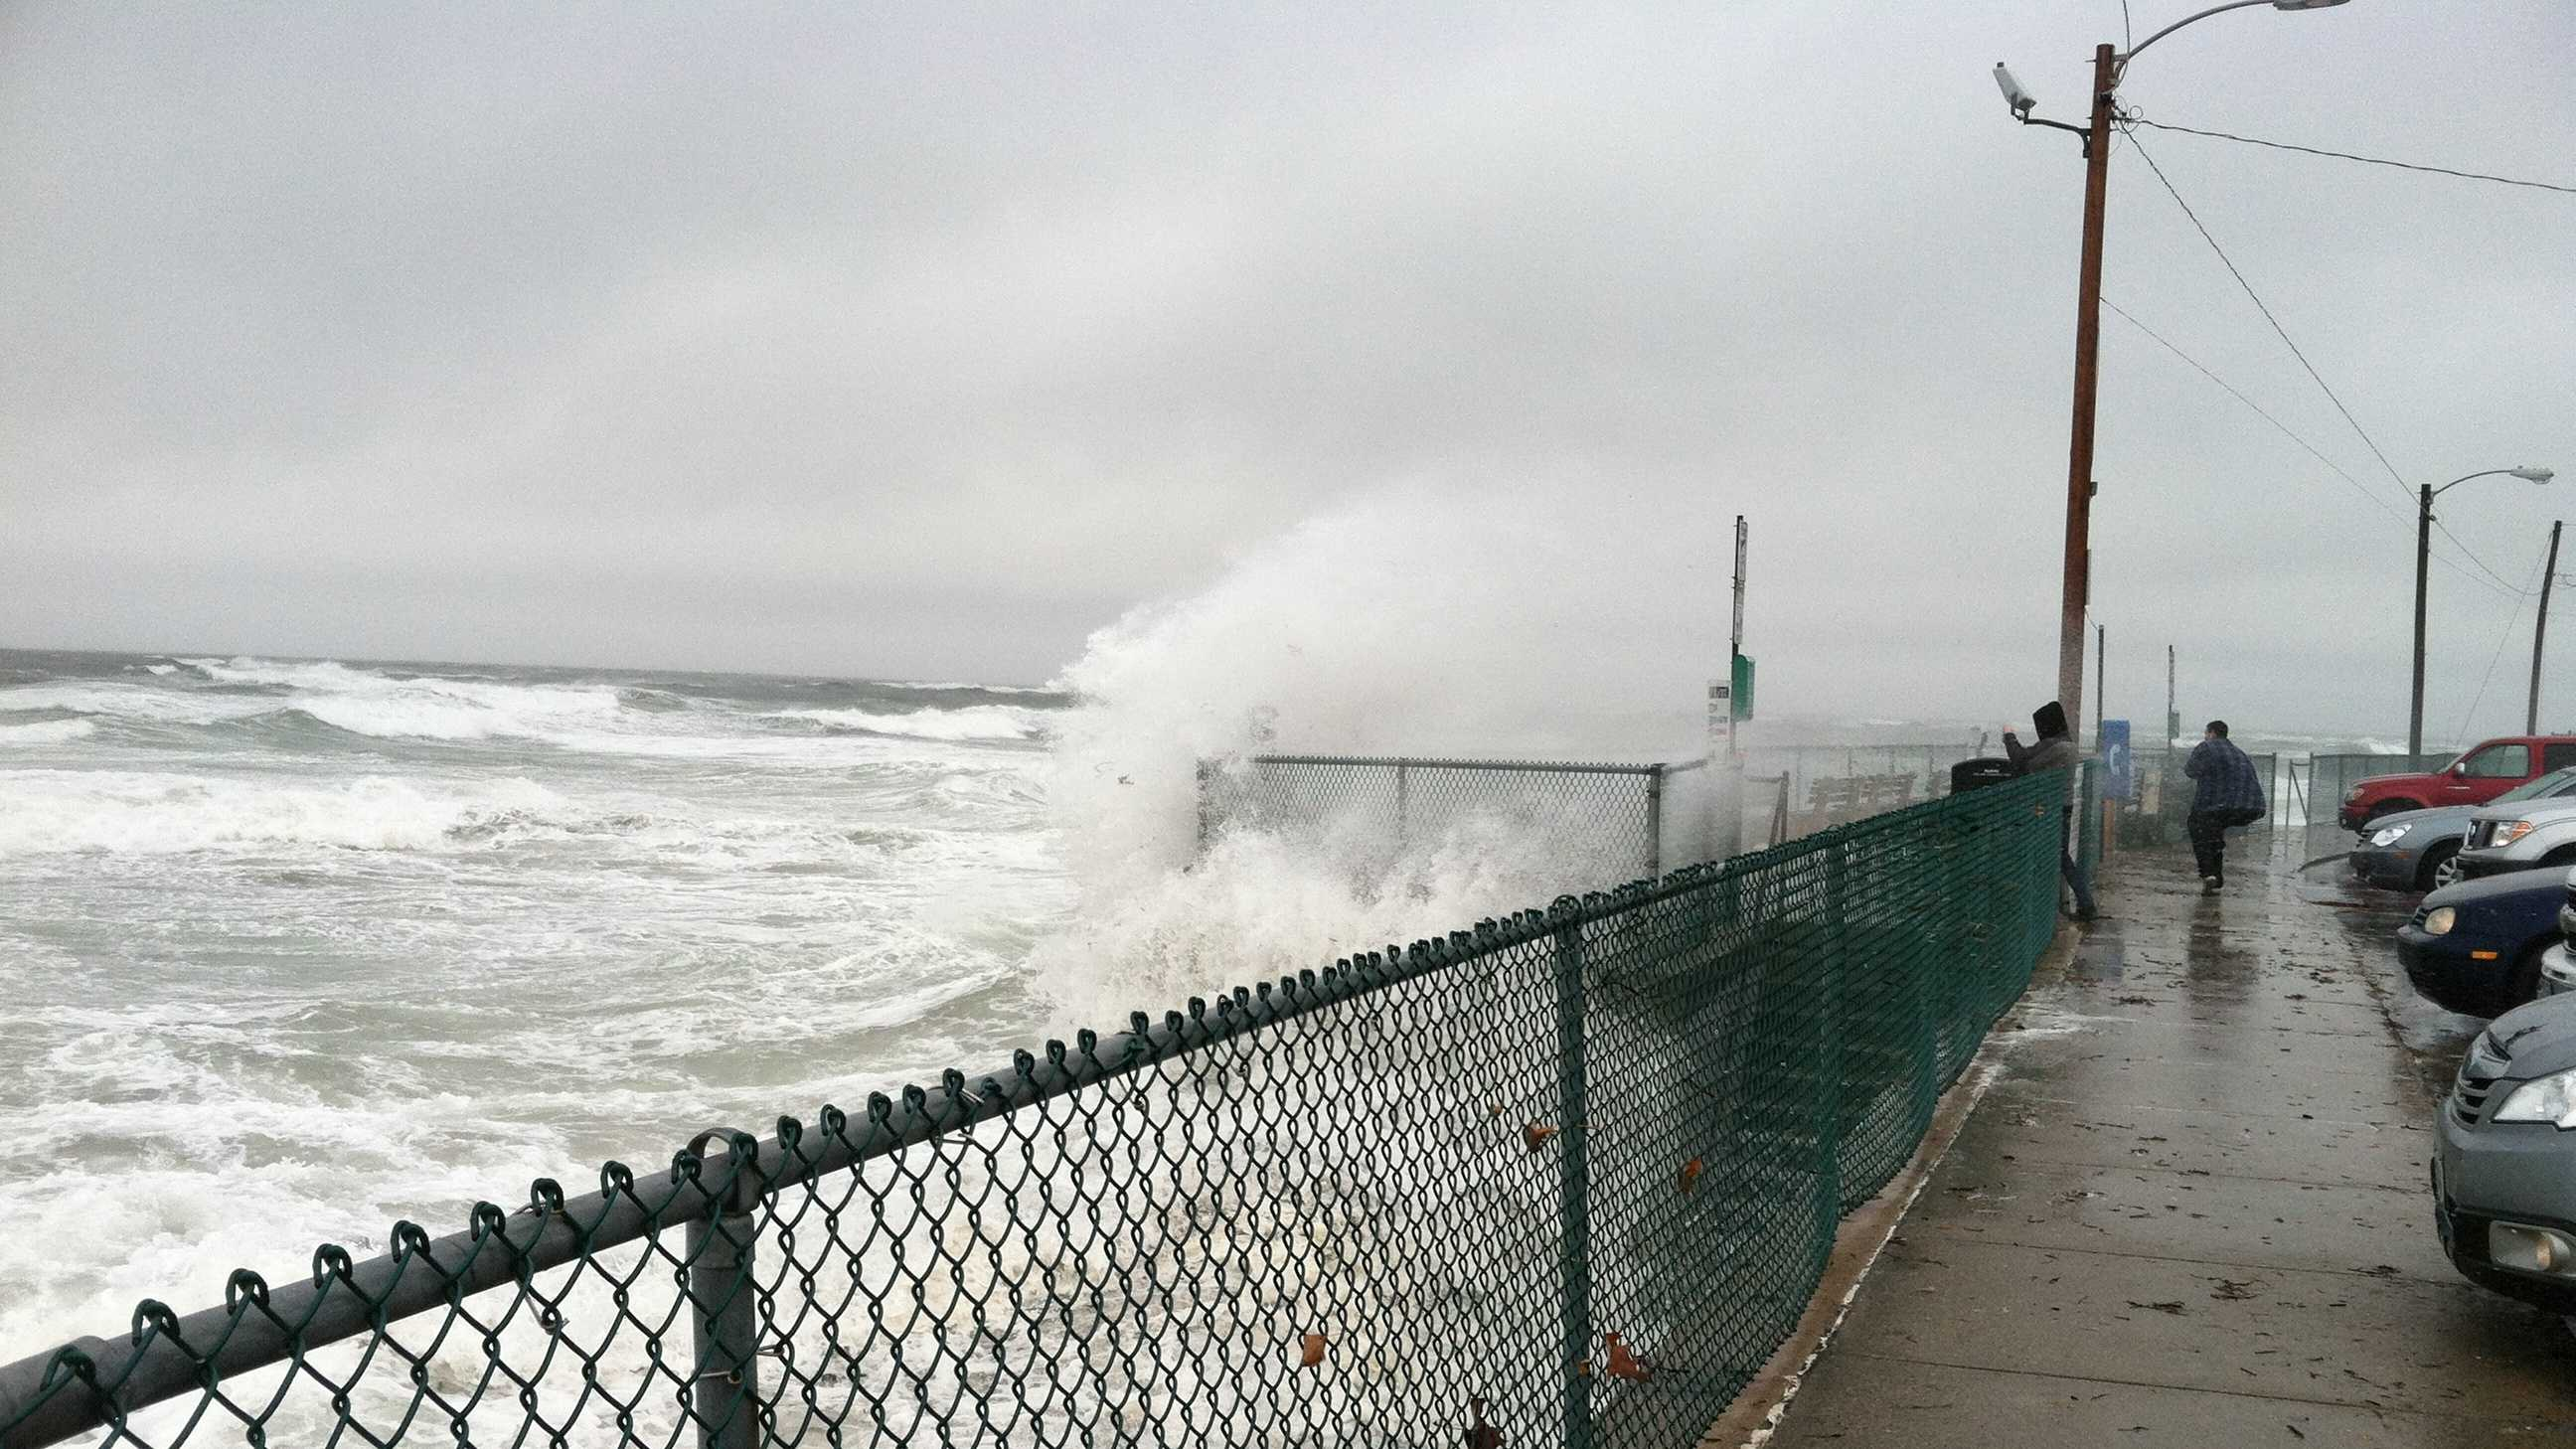 Sandy sweeps into Maine with strong winds, rain and high surf. The storm leaves several thousand people in Southern Maine in the dark.